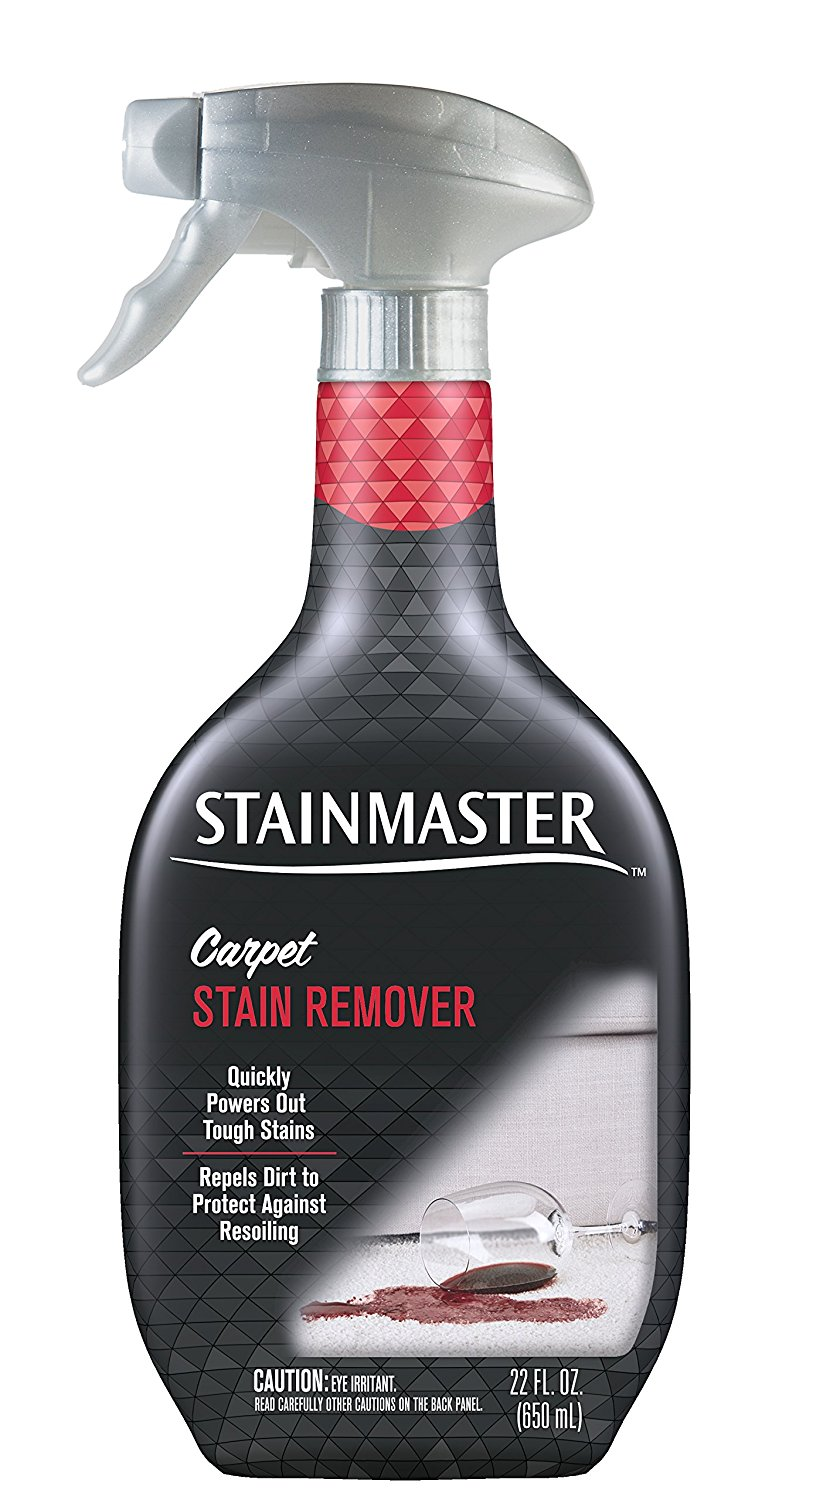 STAINMASTER Carpet Stain Remover Cleaner, 22 Ounce